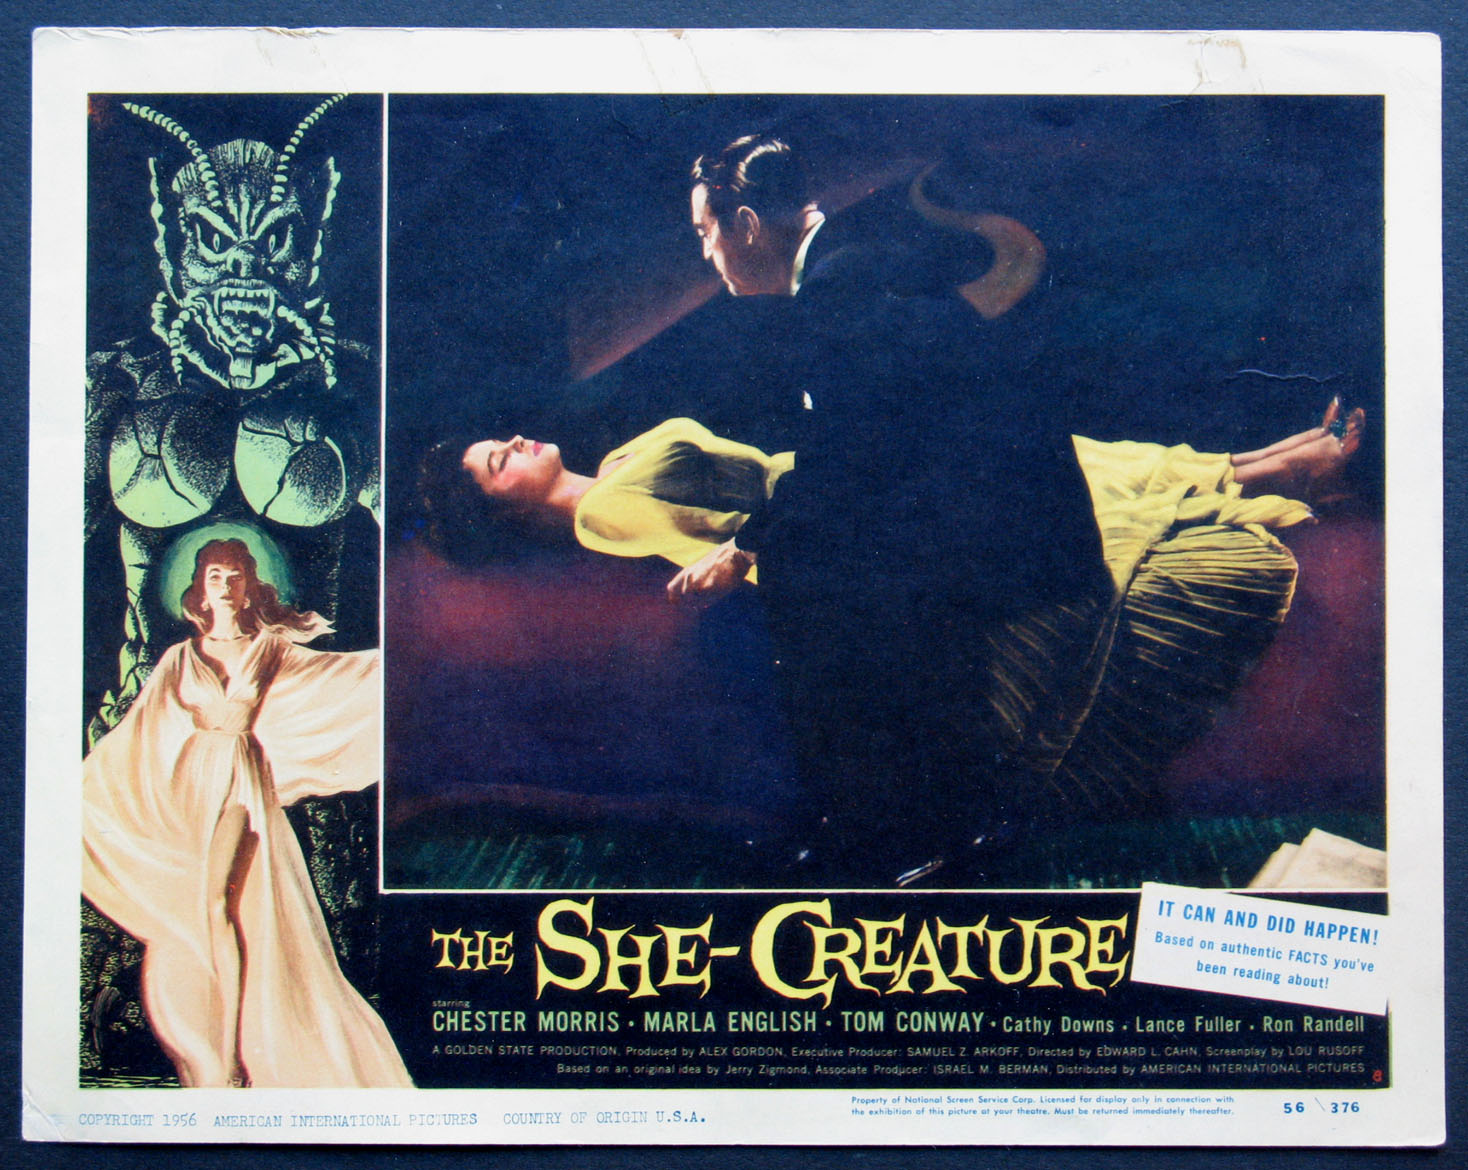 SHE-CREATURE, THE (The She Creature) @ FilmPosters.com